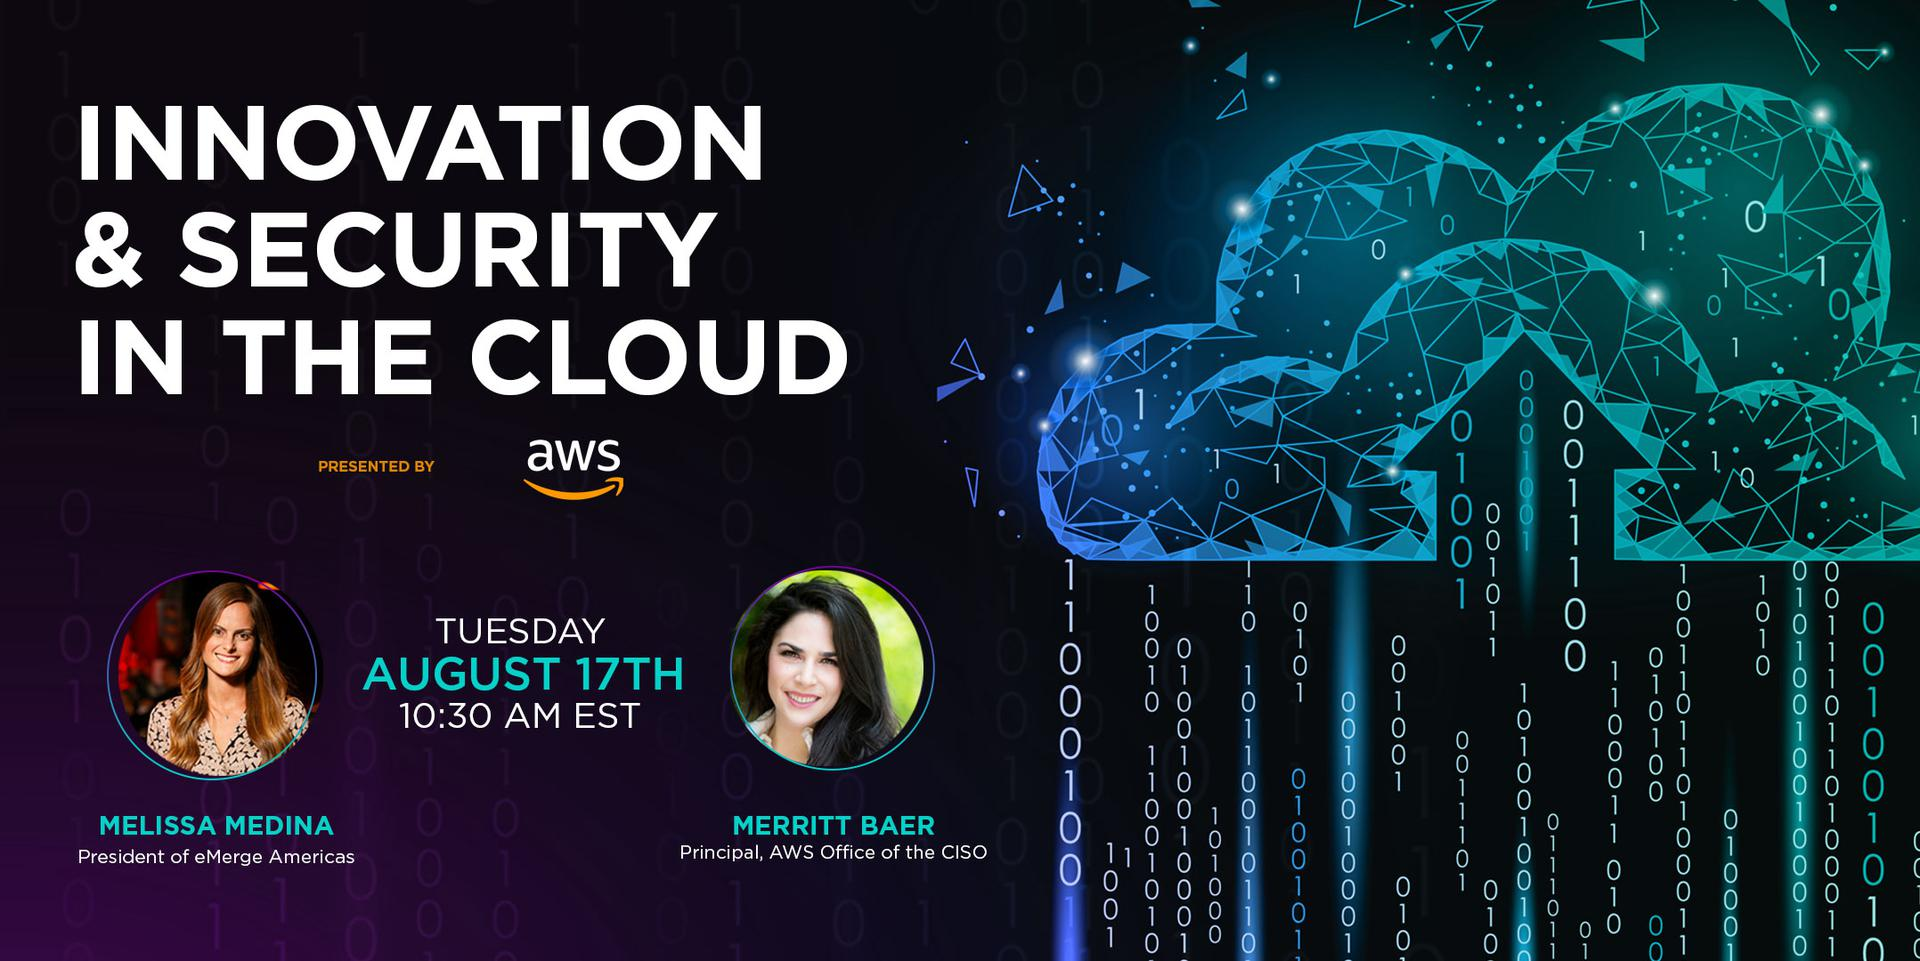 Innovation & Security In the Cloud presented by AWS